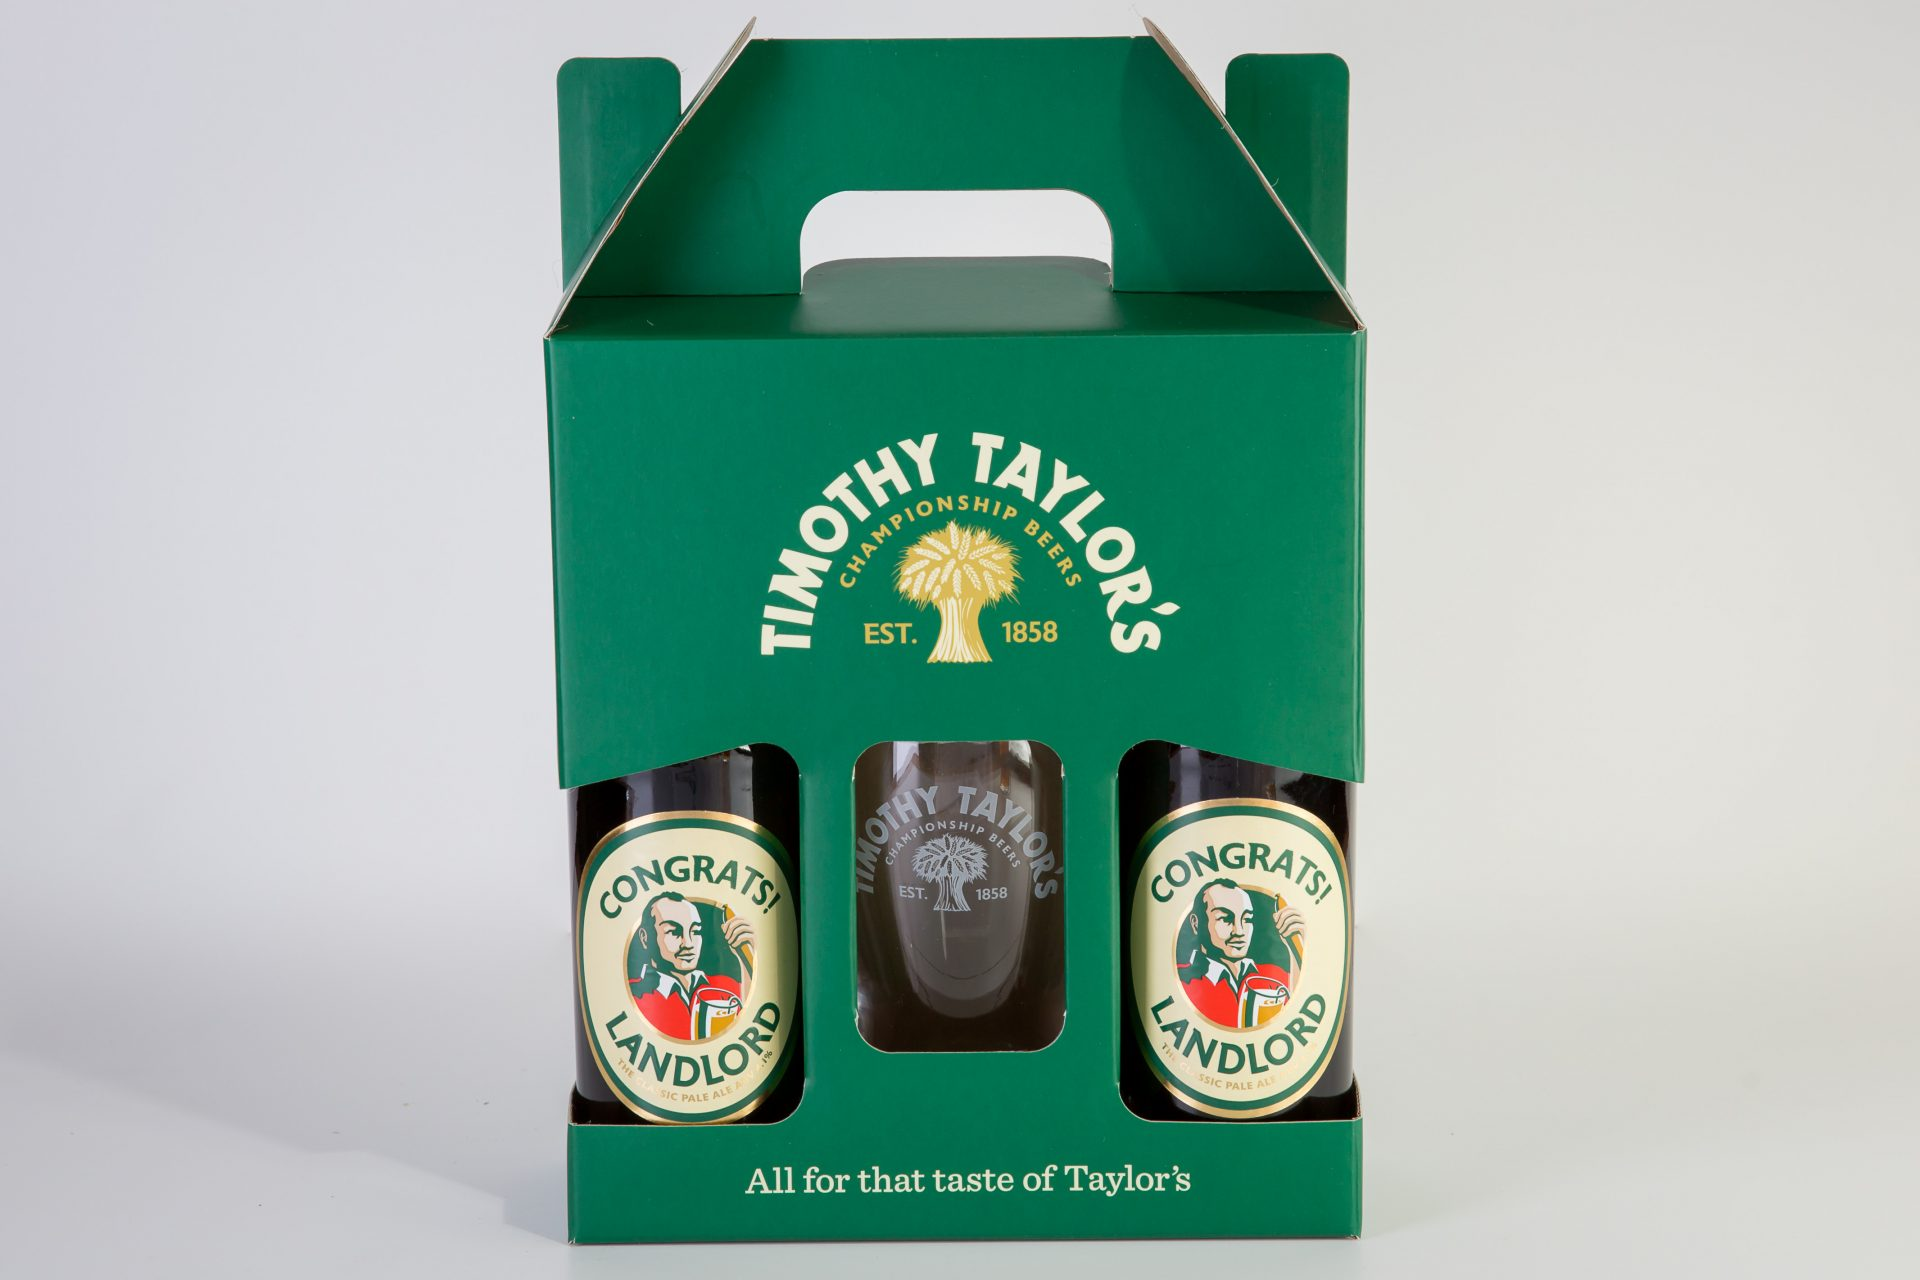 TIMOTHY TAYLOR'S PERSONALISED BOTTLES – 1